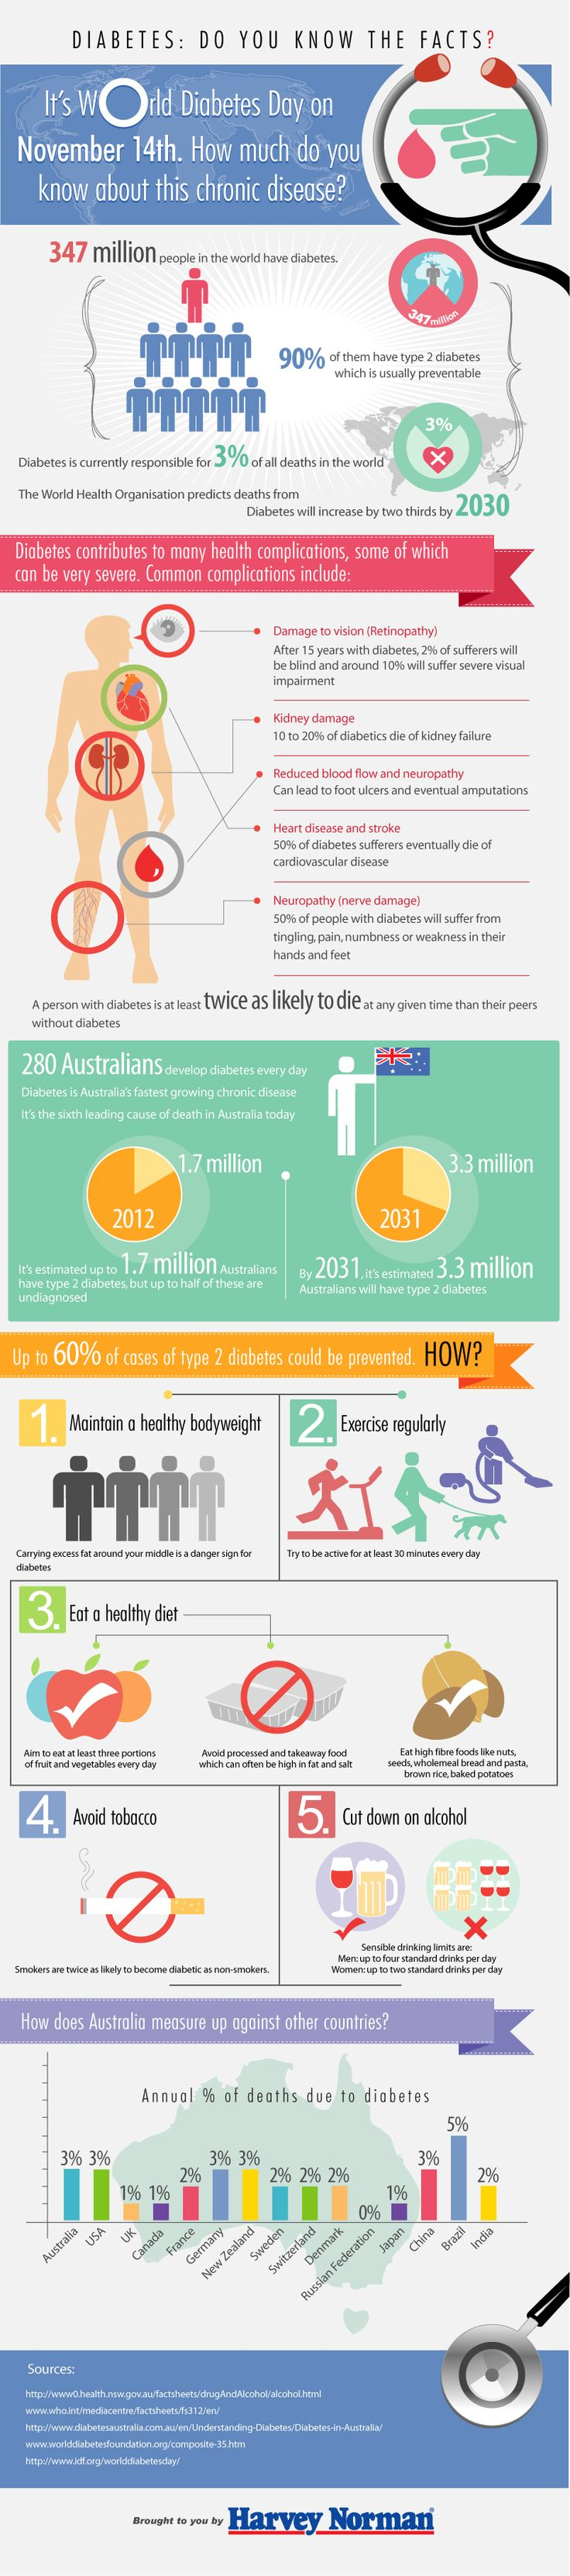 Diabetes in Australia – Do You Know The Facts? - Fitness - Cycling - Golf | Harvey Norman Australia